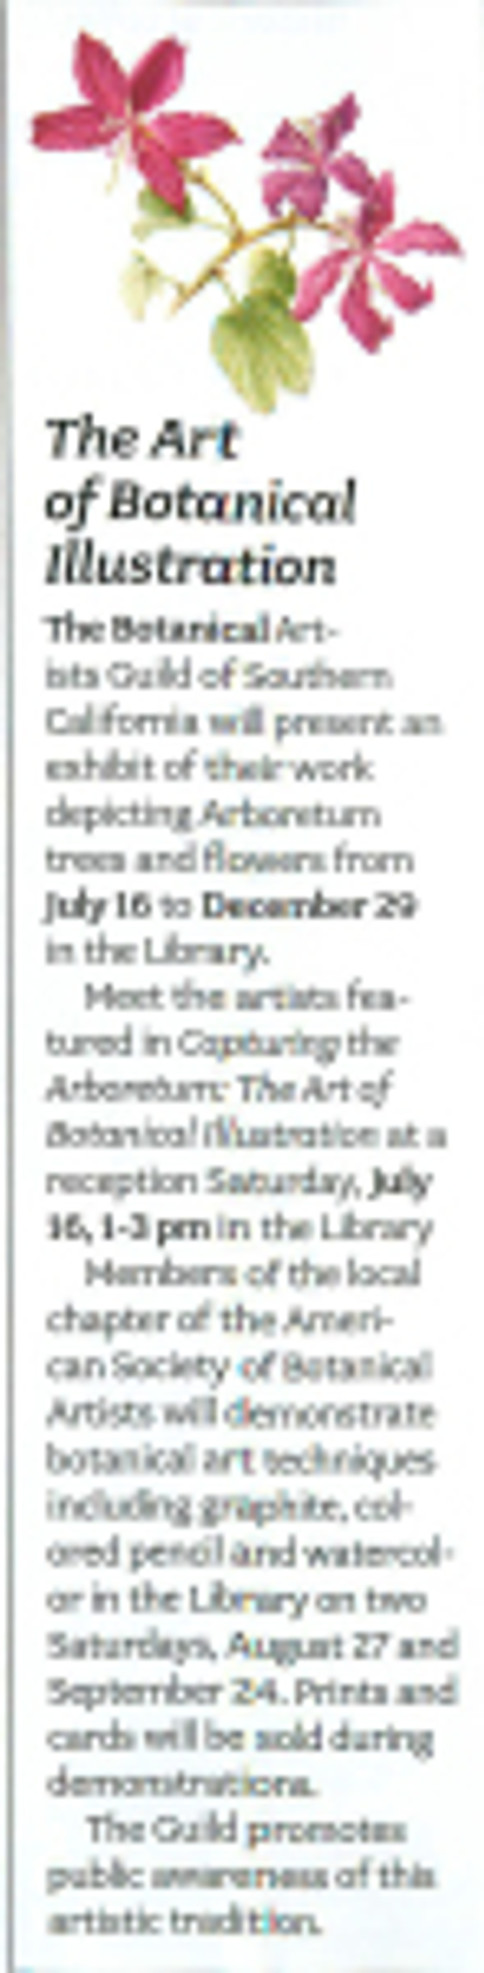 This notice of the Art Show appeared in the latest issue of the Arboretum Newsletter. Artwork by Diane Daly, © 2016, all rights reserved.